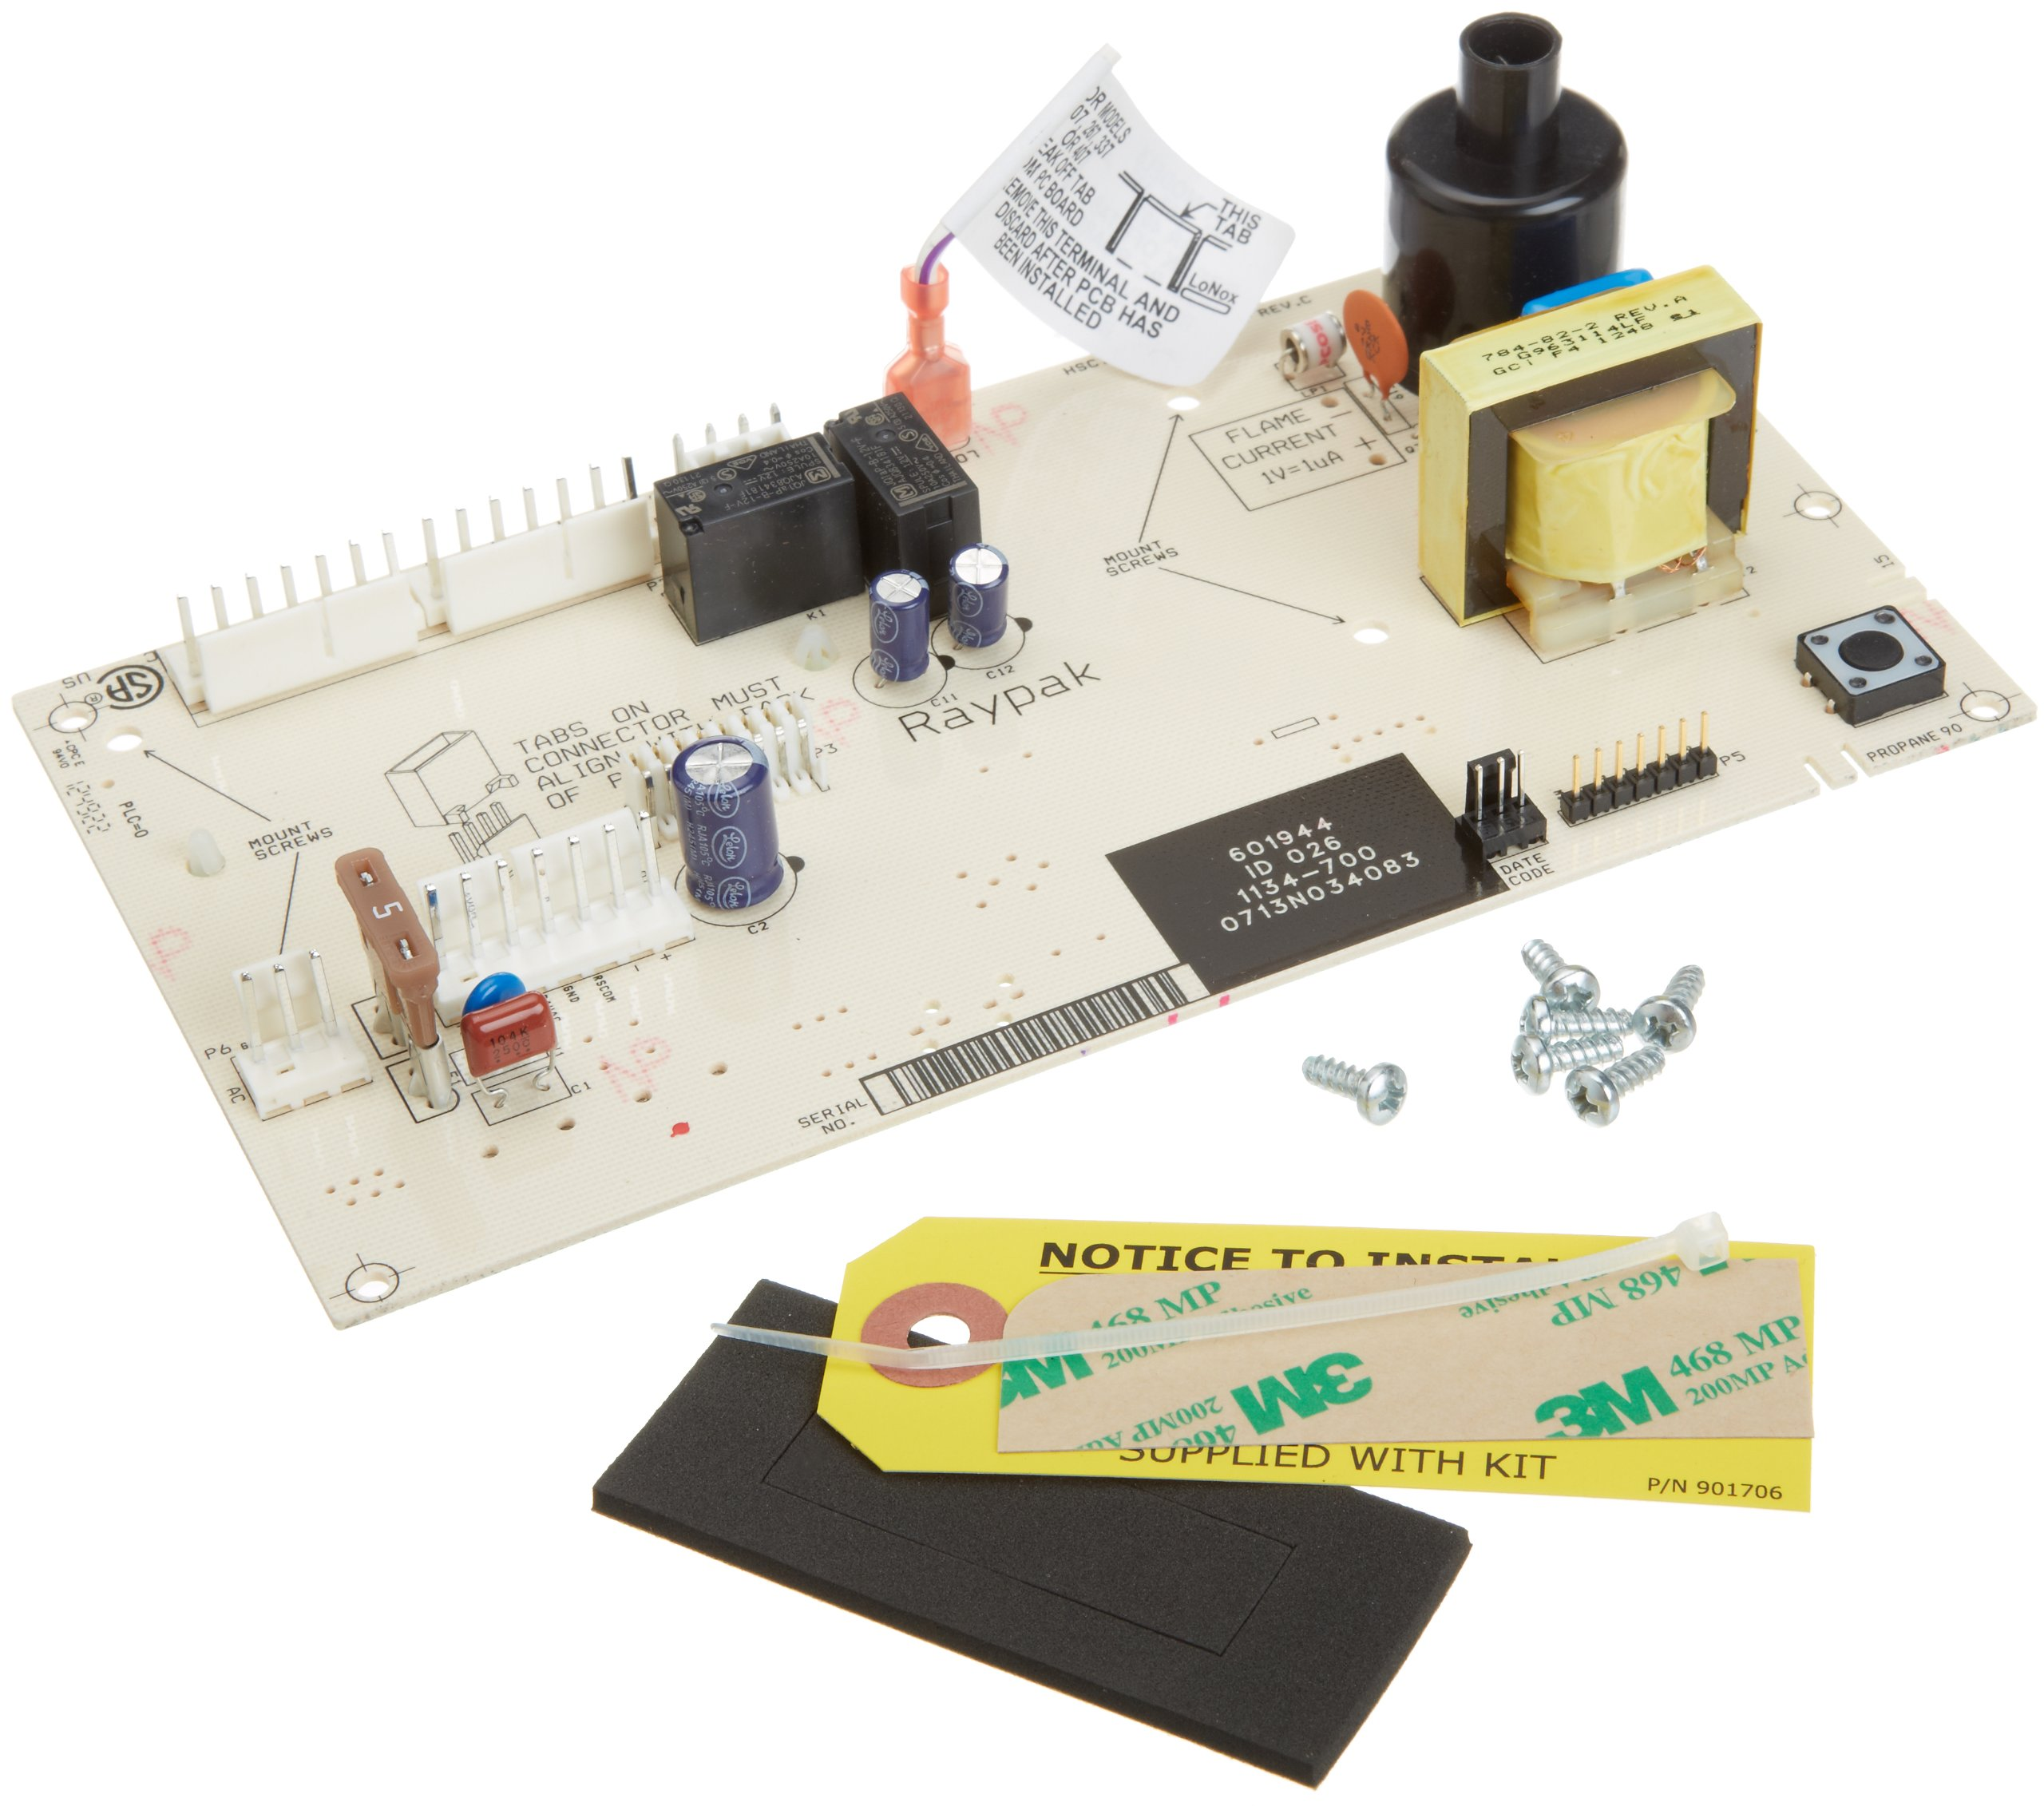 Raypak 013464F PC Board Control Replacement for Digital Gas Heater by Raypak